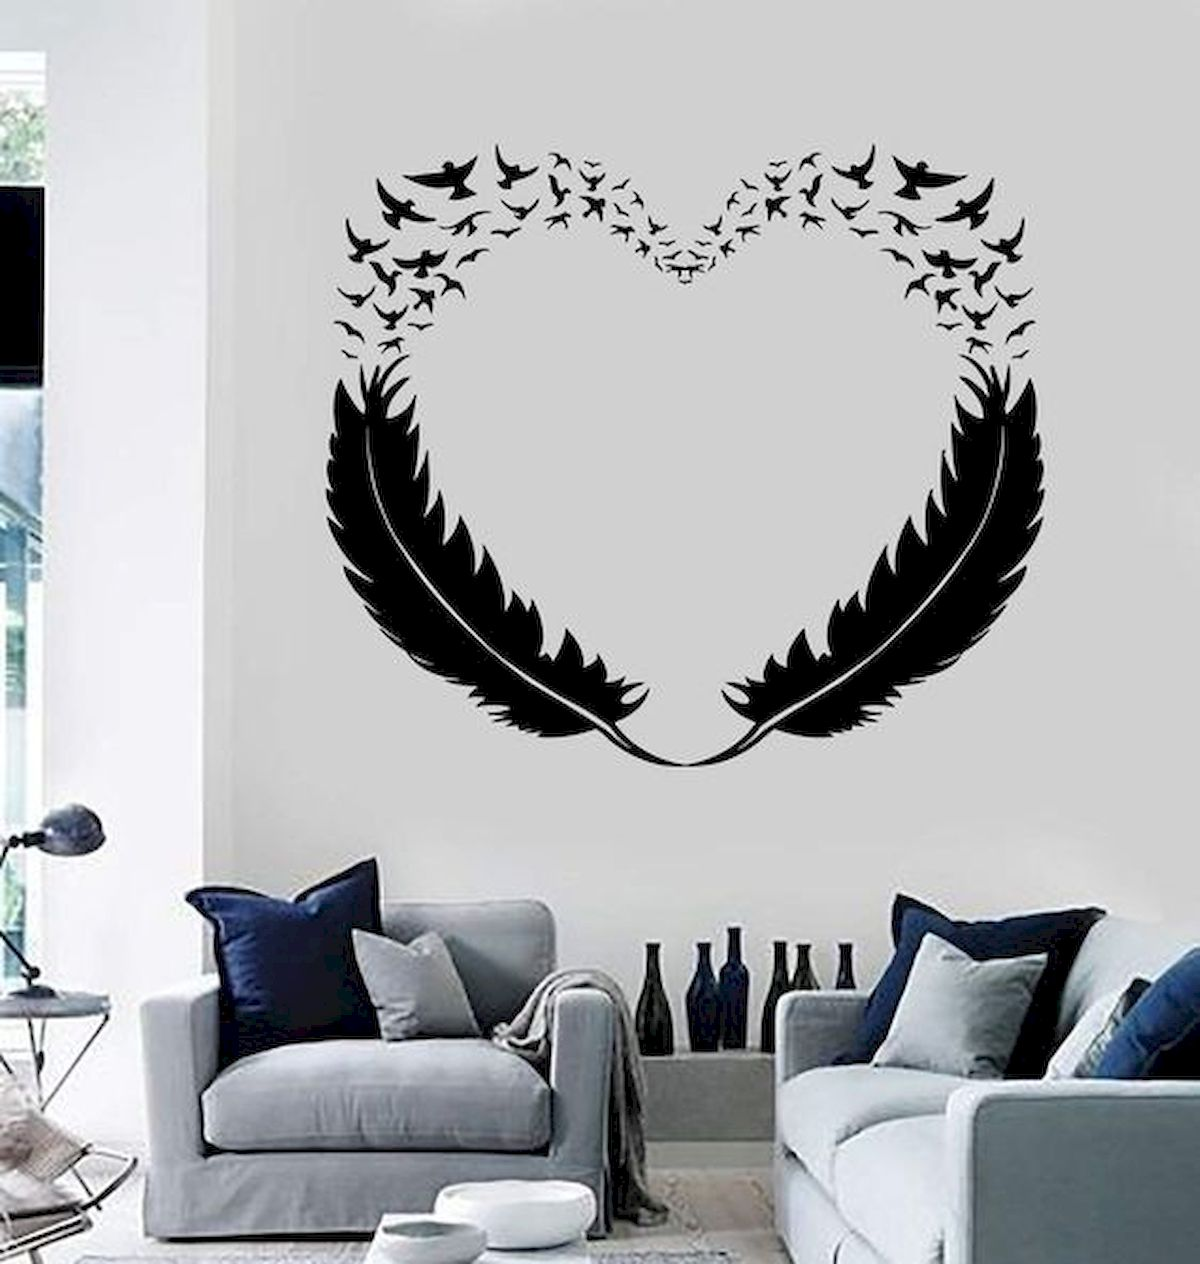 44 Easy but Awesome DIY Wall Painting Ideas to Decorate Your Home (34)